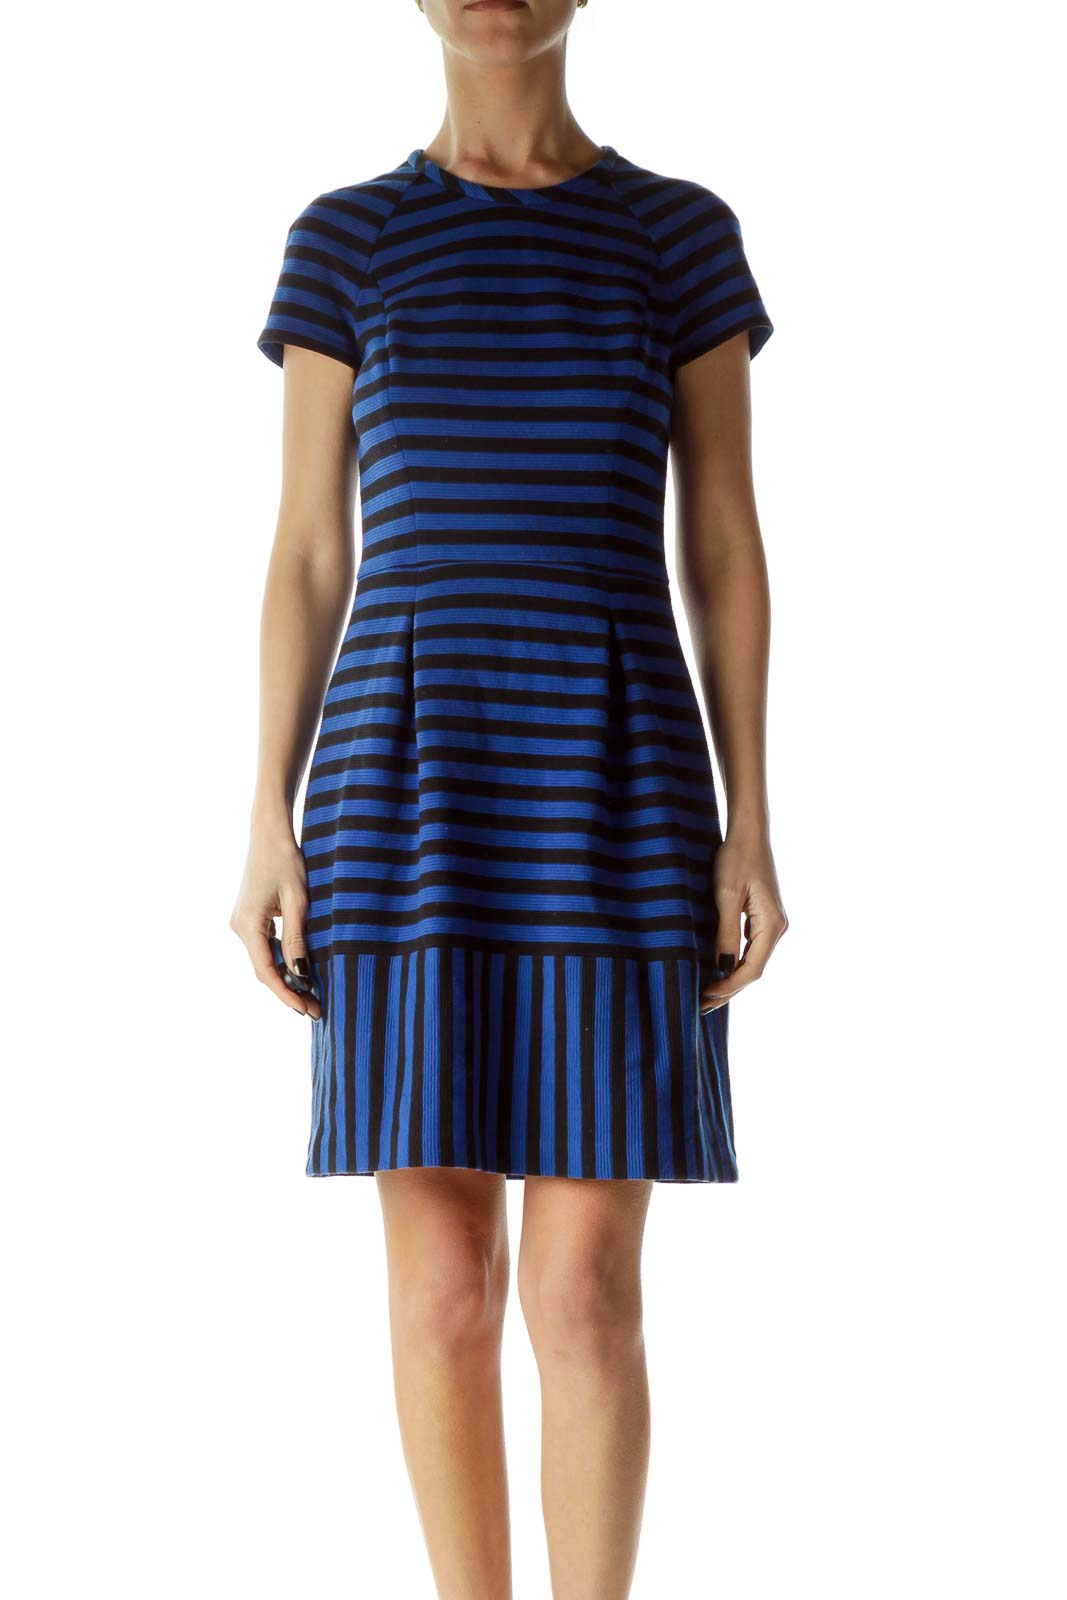 Blue Black Striped Textured A-Line Dress